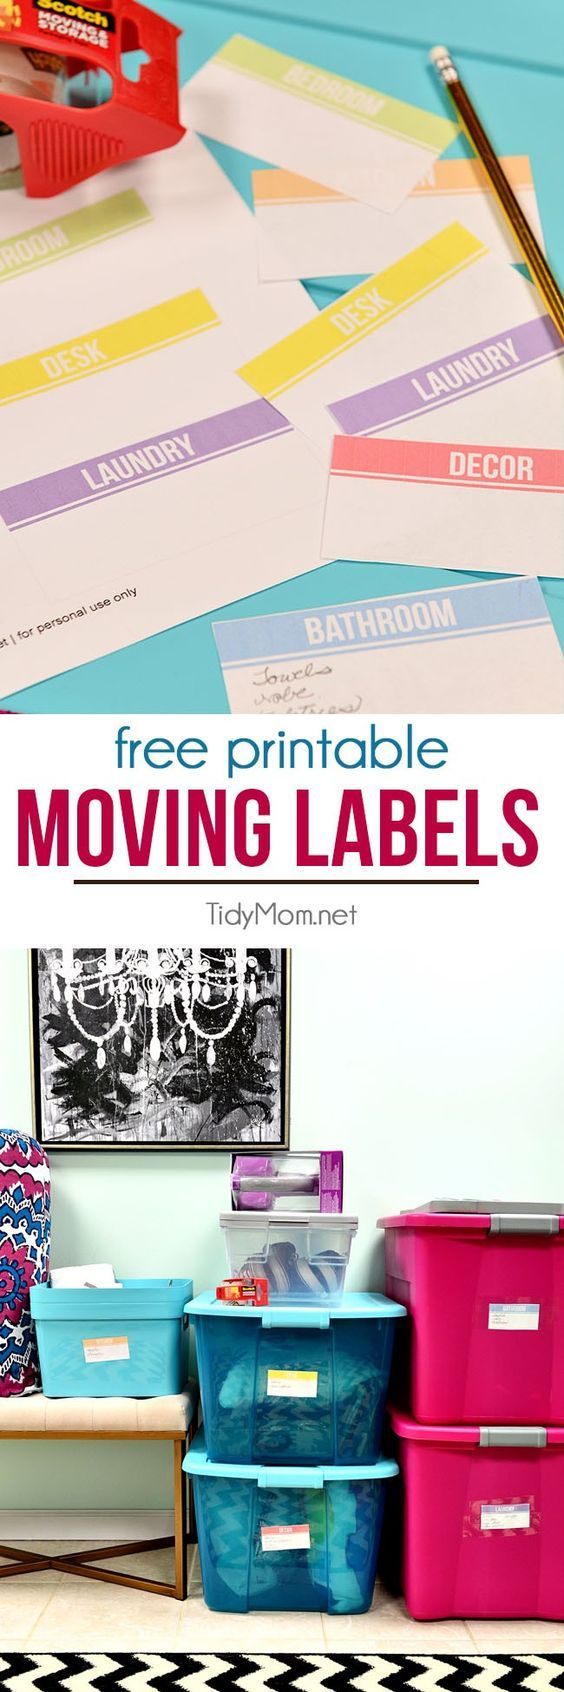 Stay organized during your move with FREE DIY printable moving labels with plenty of writing space for what's inside the box. at TidyMom.net